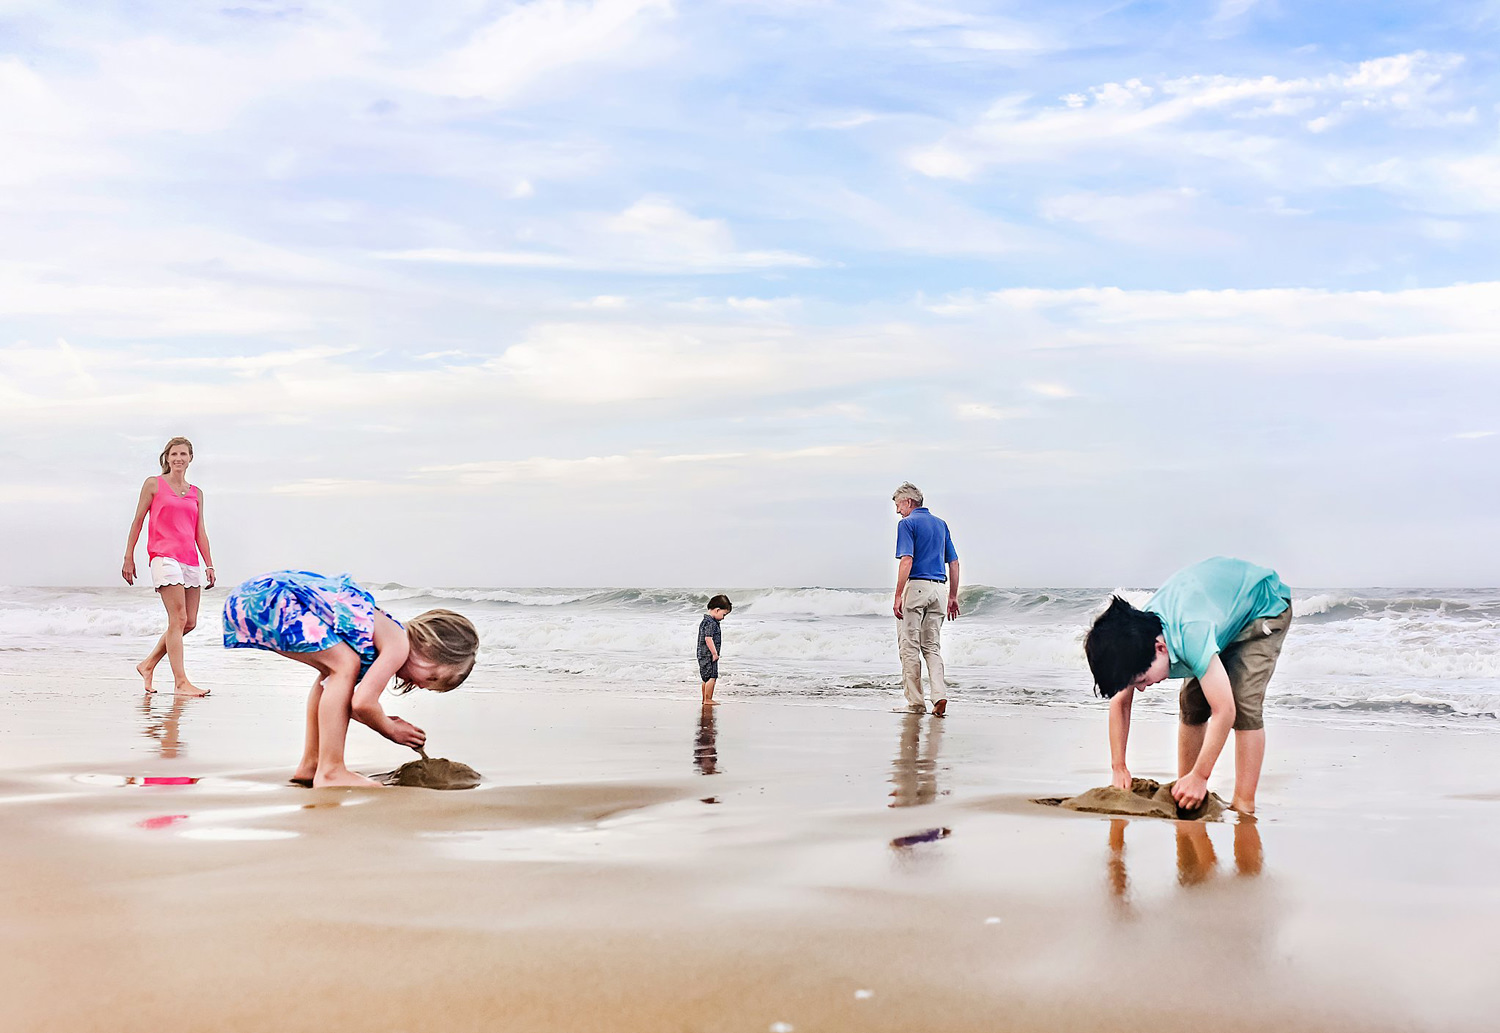 creative-family-beach-picture-virginia-beach-photographer-melissa-bliss-photography.jpg